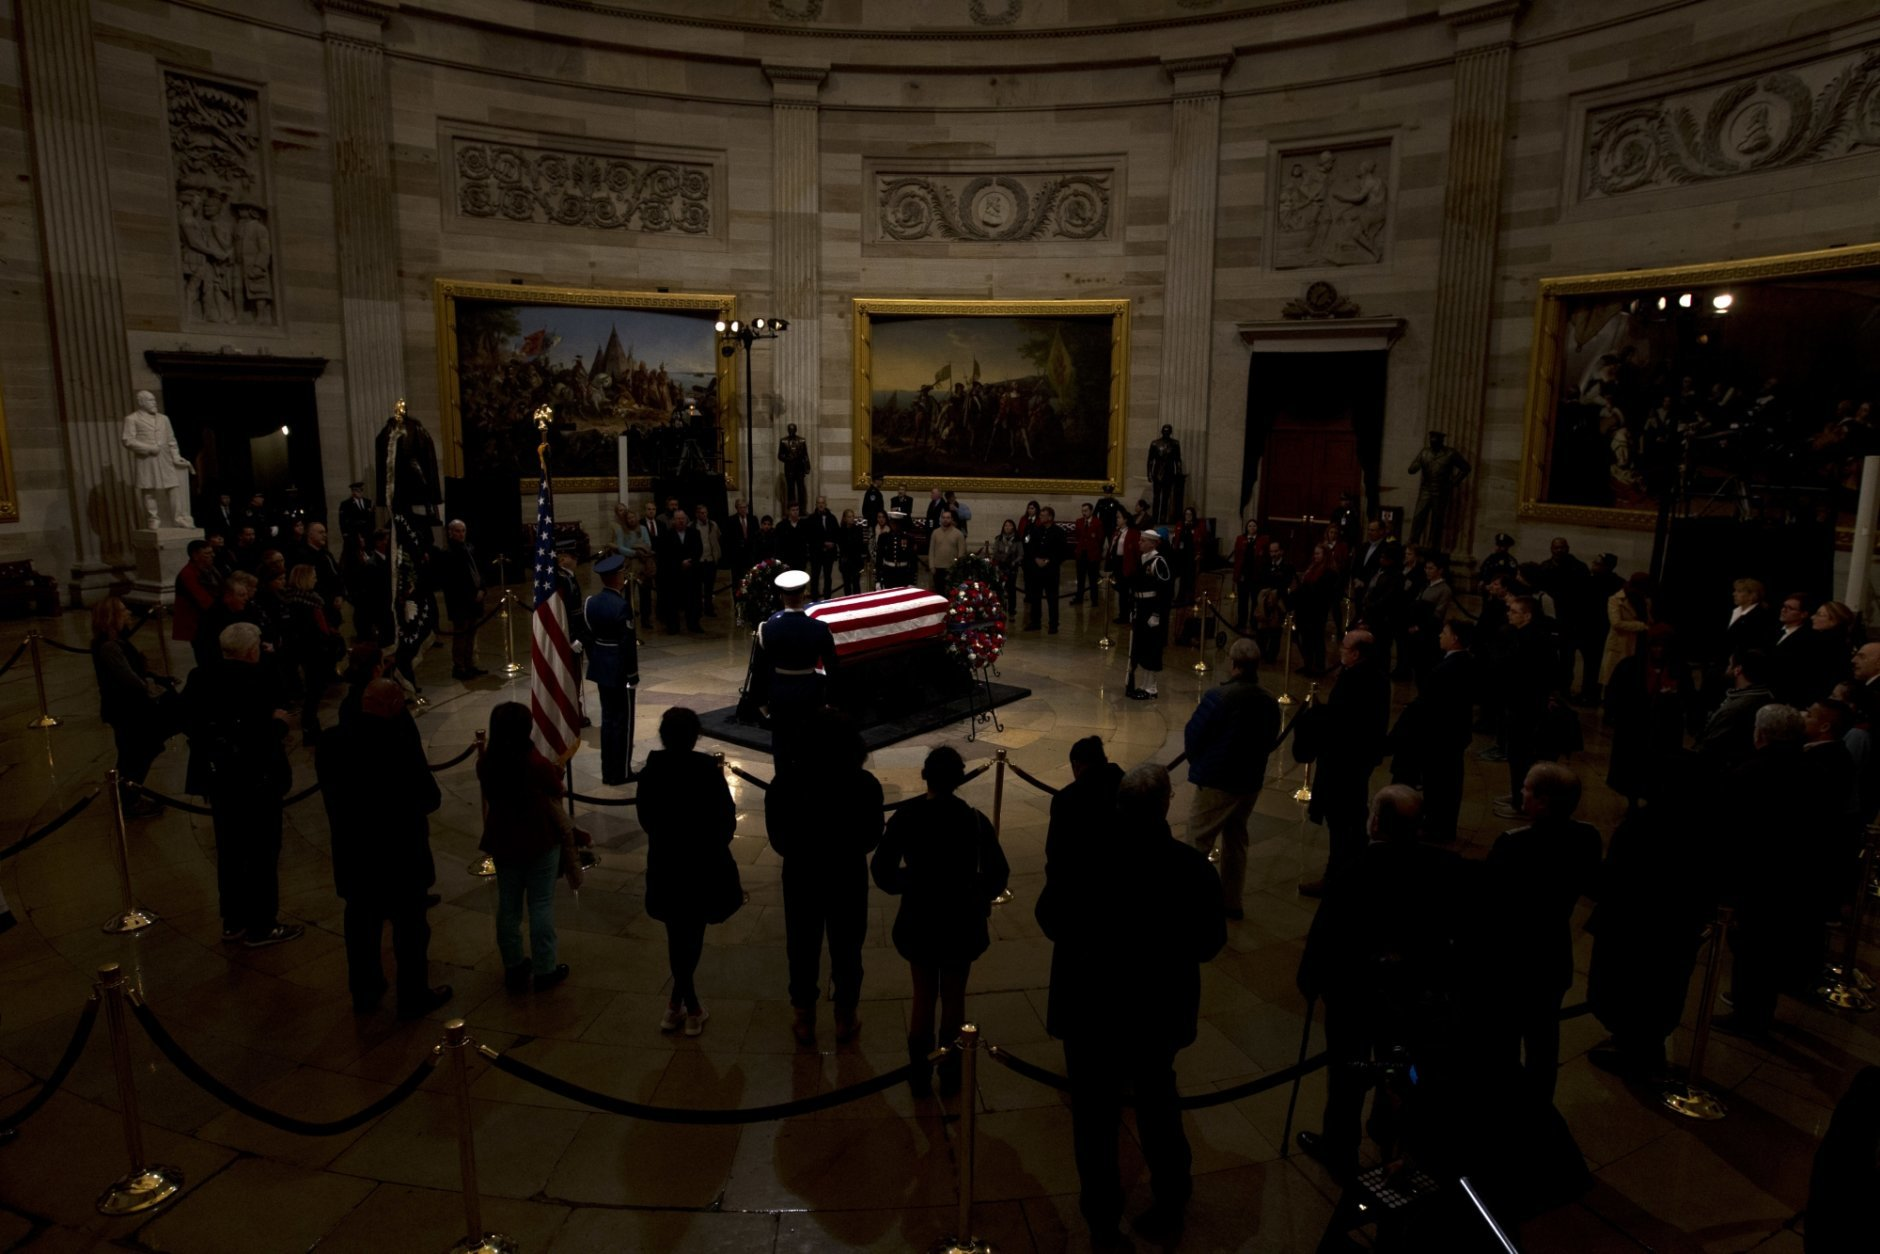 The flag-draped casket of former President George H.W. Bush lies in state in the Capitol Rotunda in Washington, Wednesday, Dec. 5, 2018. (AP Photo/Jose Luis Magana)